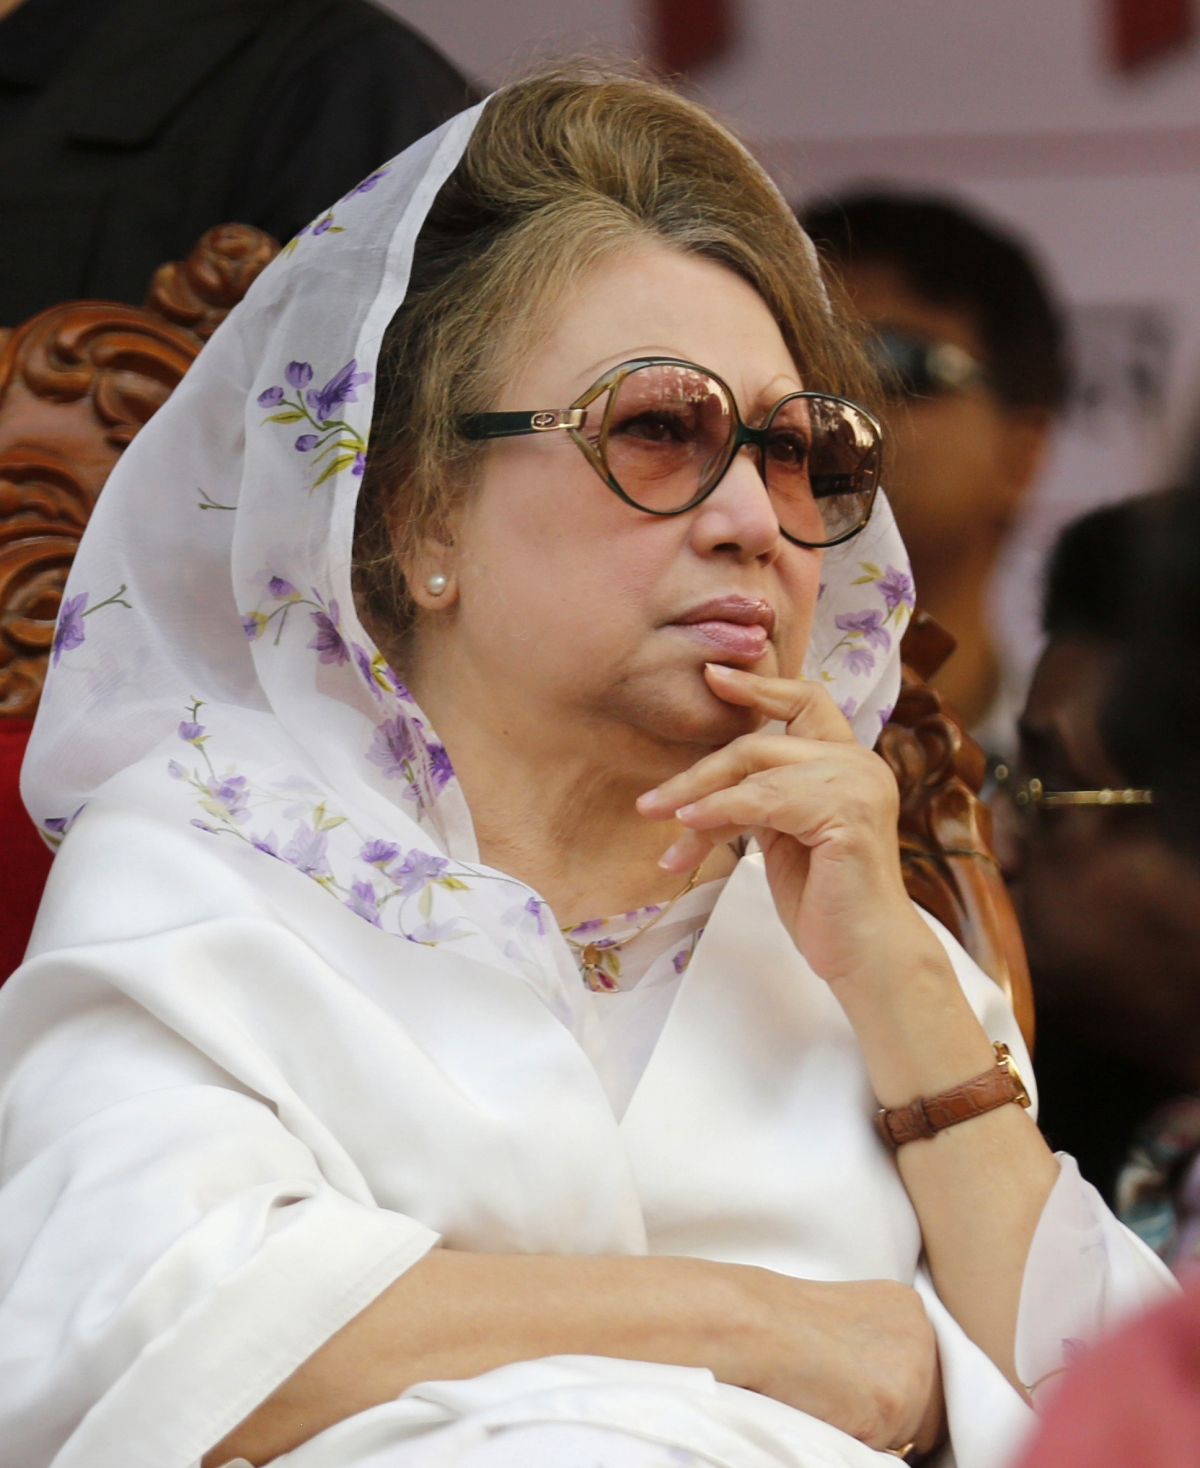 Al-Qaeda, recruitment, join jihadica Khaleda zia hot pictures